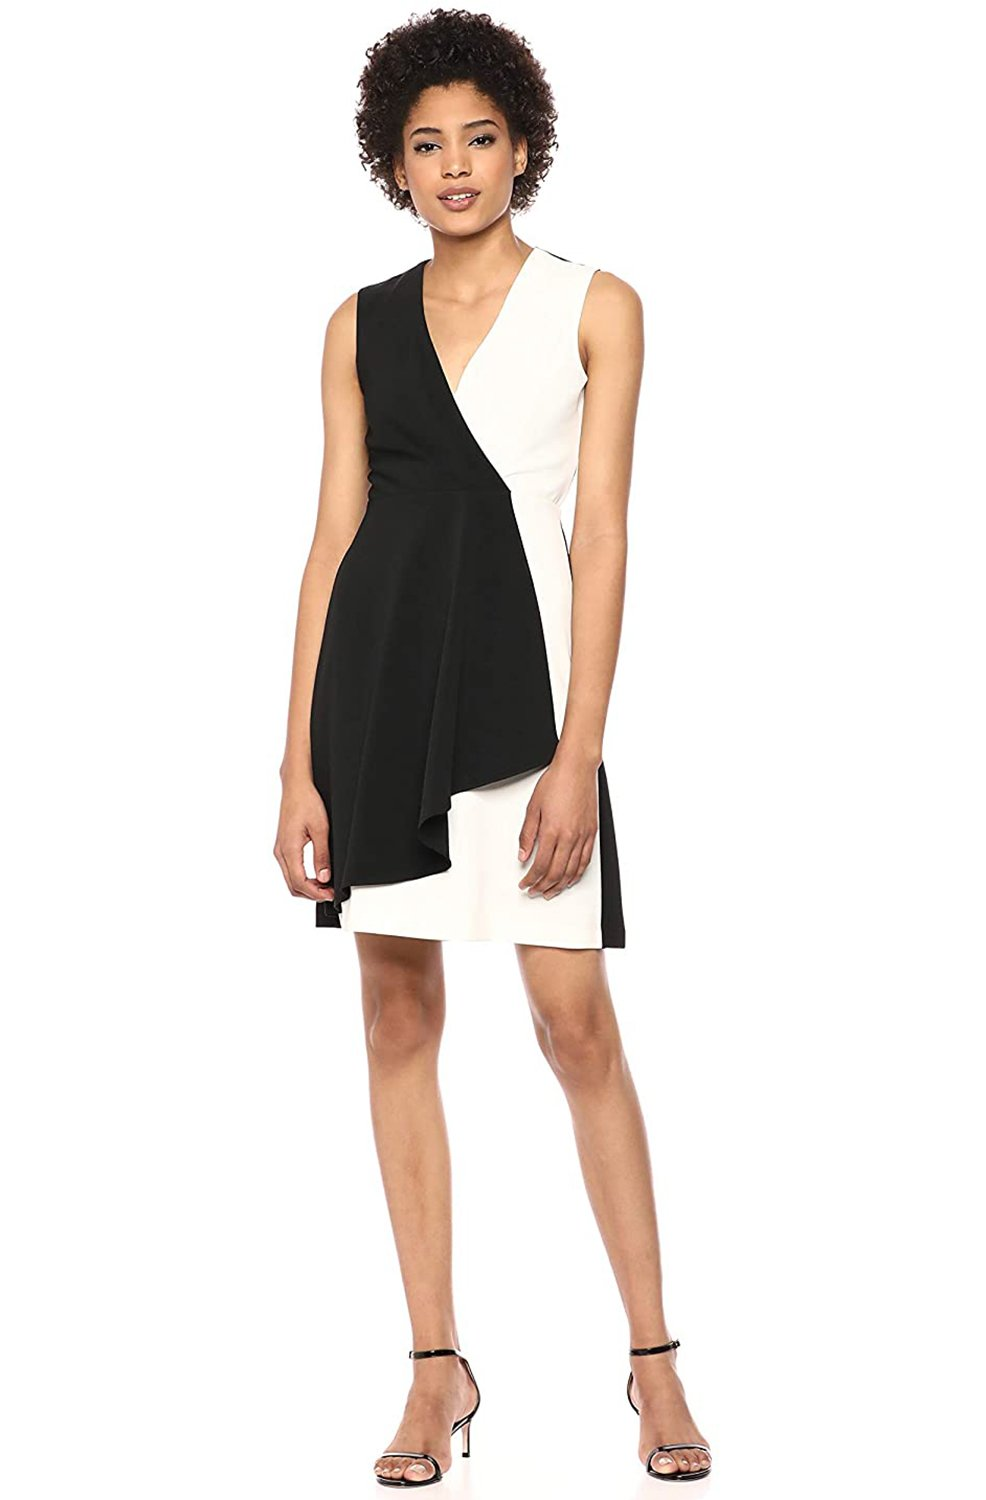 Taylor - 1240M Two Tone V-neck Pleated A-line Dress In Black and White